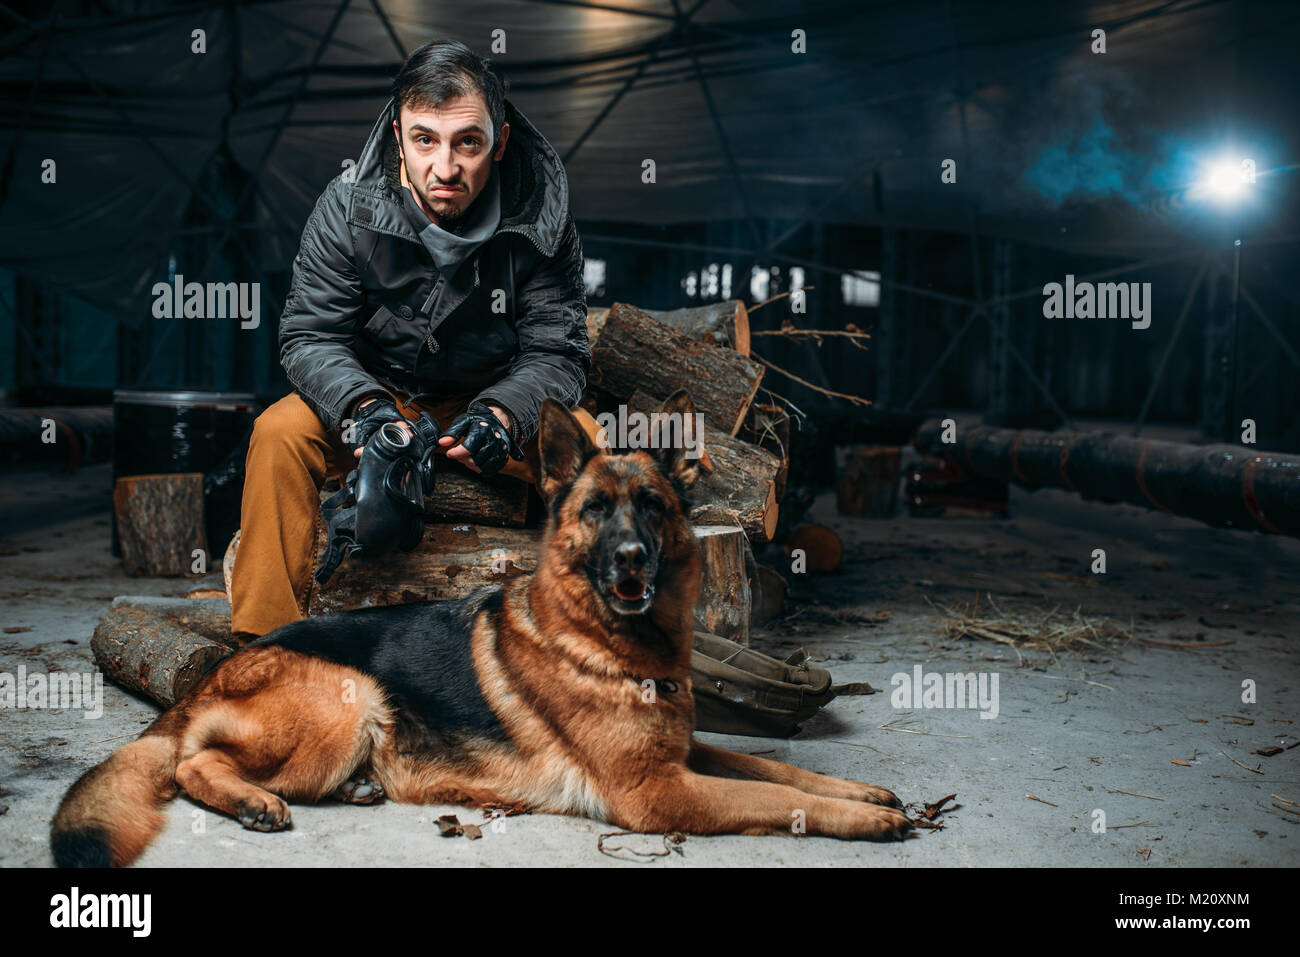 Stalker and dog, friends in post apocalyptic world. Post-apocalypse lifestyle on ruins, doomsday, judgment day - Stock Image